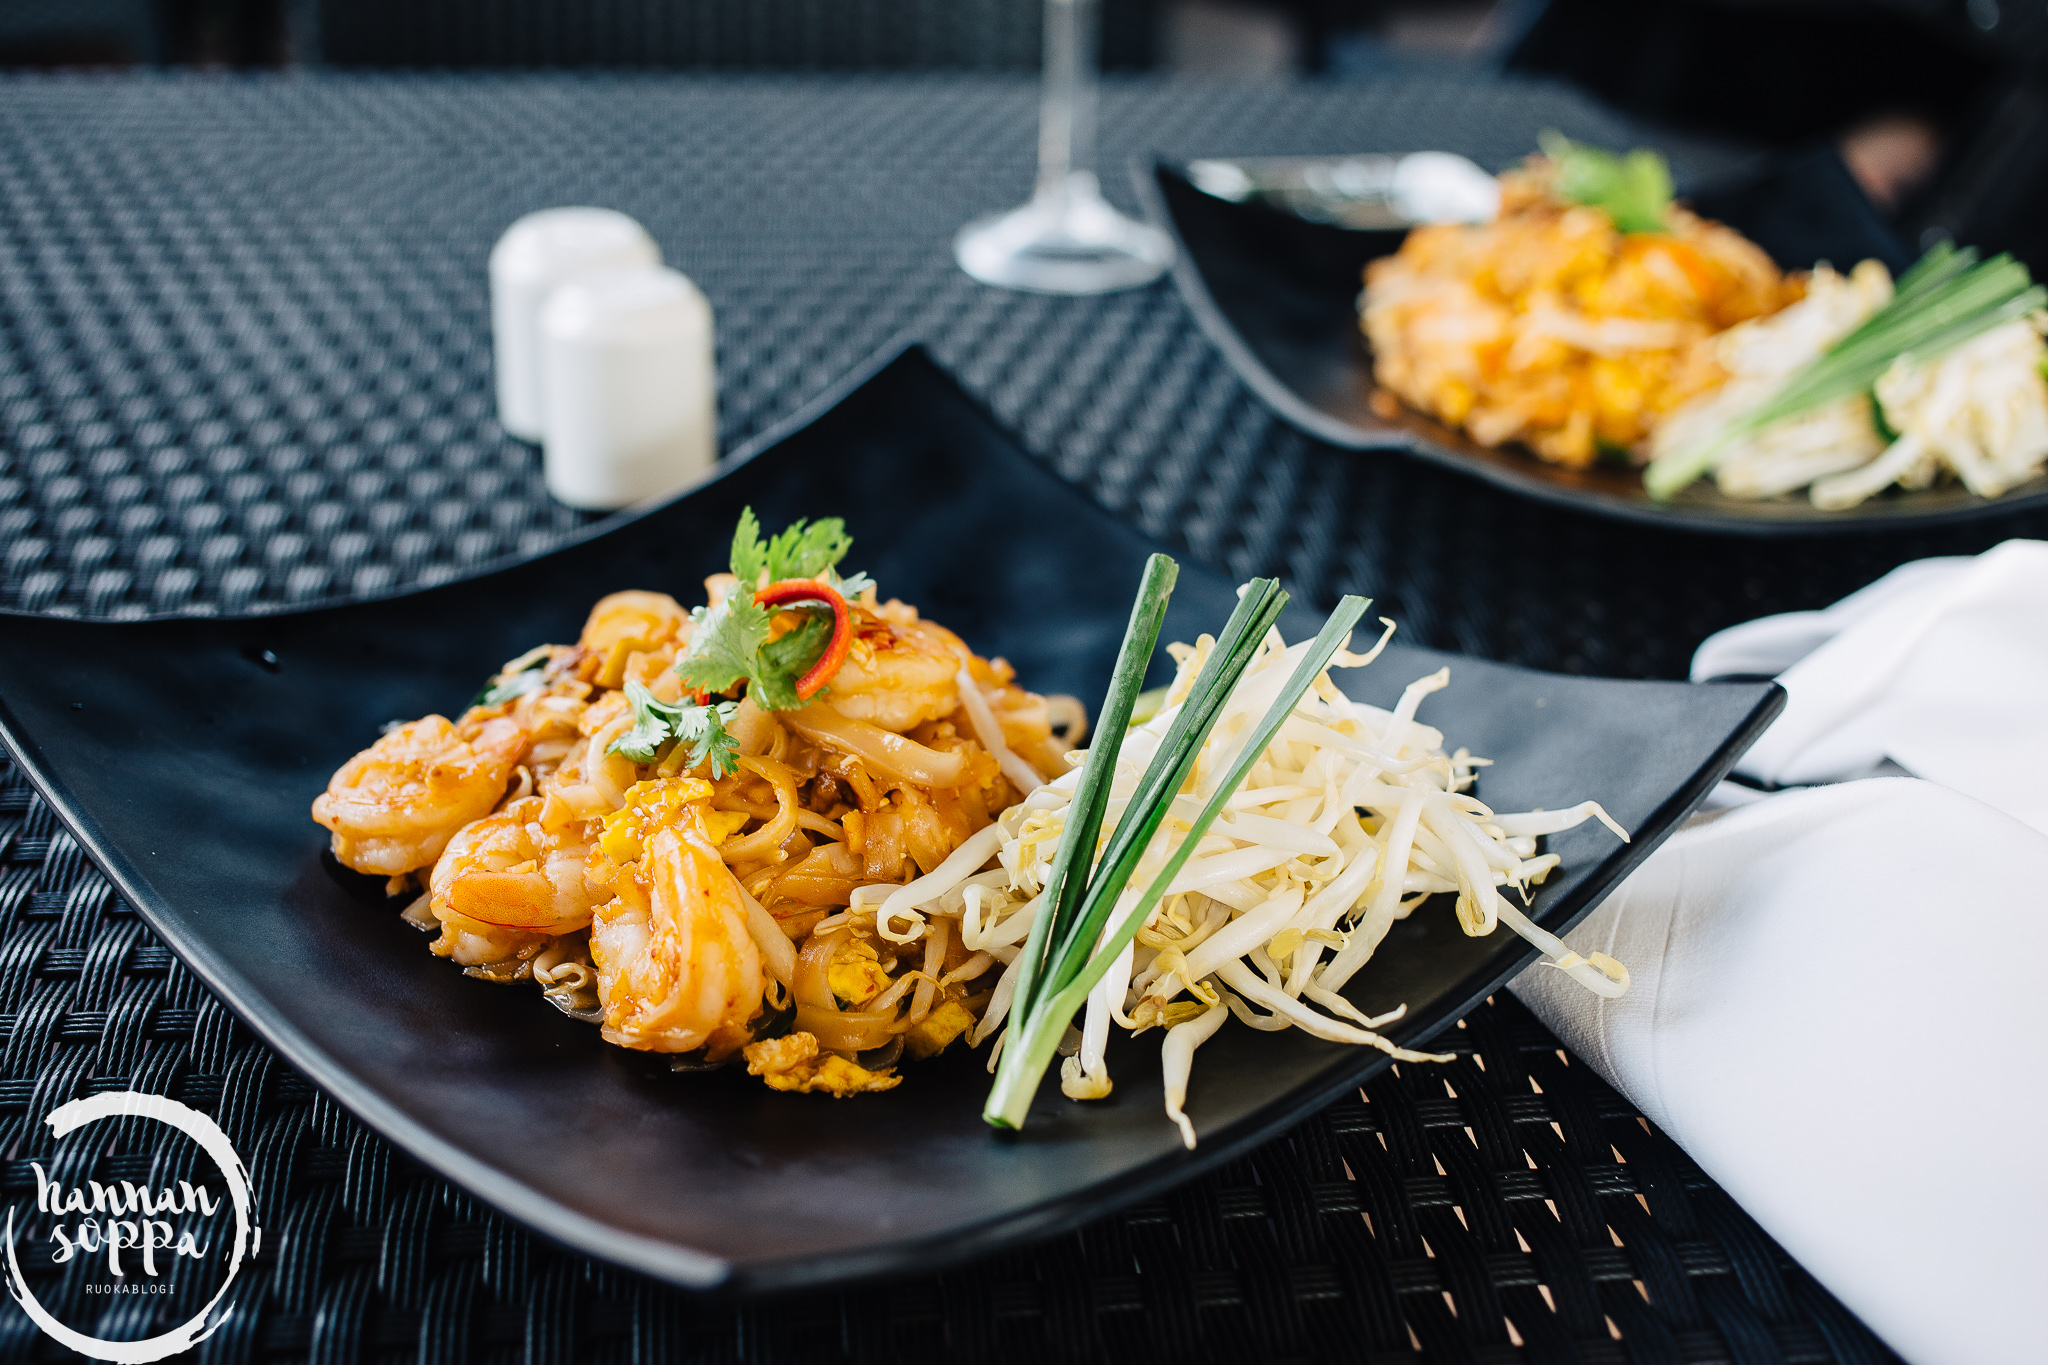 Chatrium pool bar: pad thai - Hannan soppa